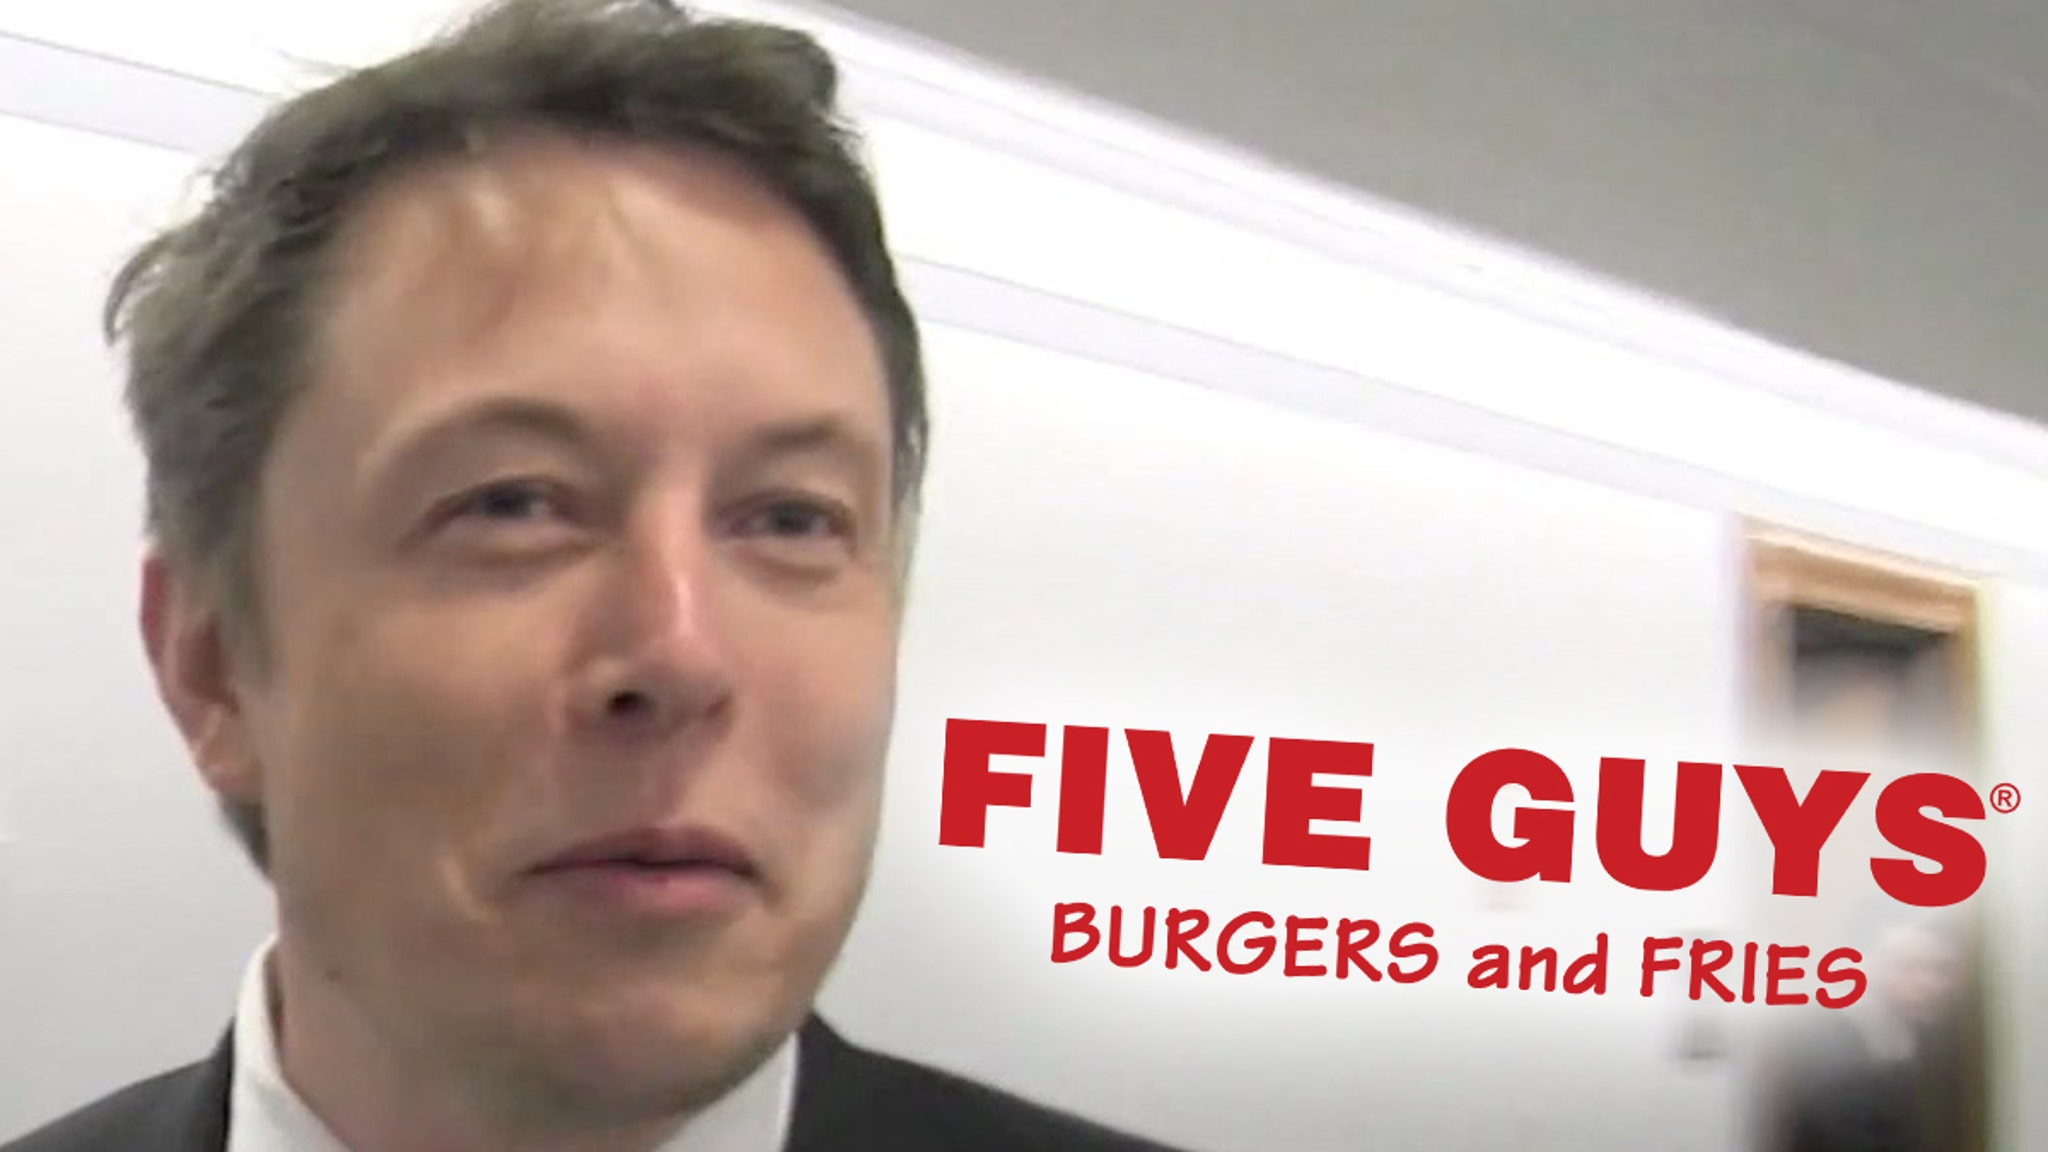 Elon Musk Grabbed Five Guys Burger After SpaceX Launch Postponement - TMZ